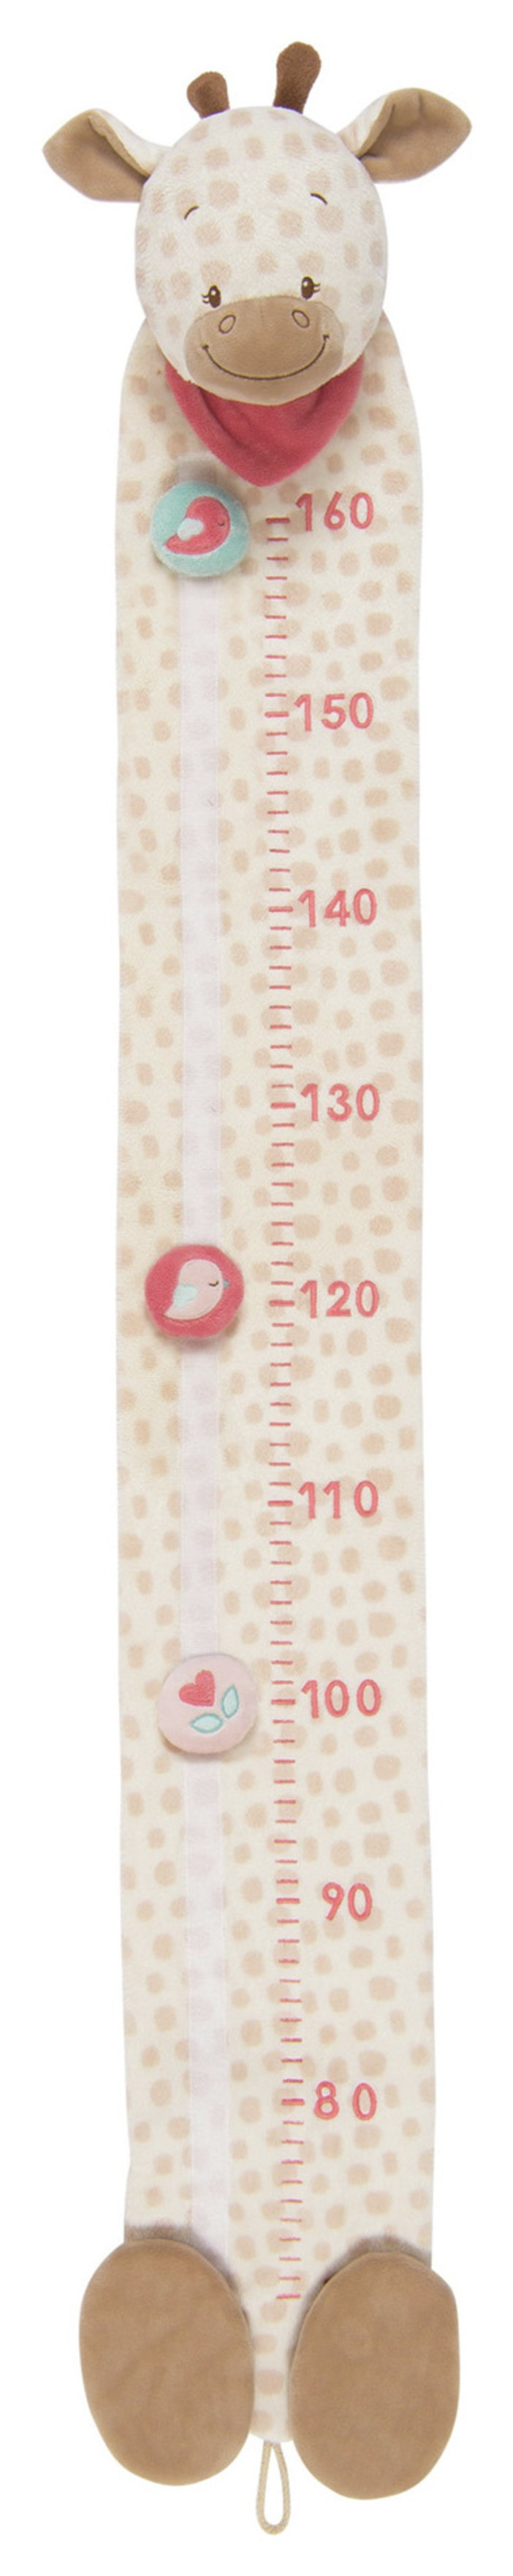 Image of Nattou Charlotte & Rose Growth Chart